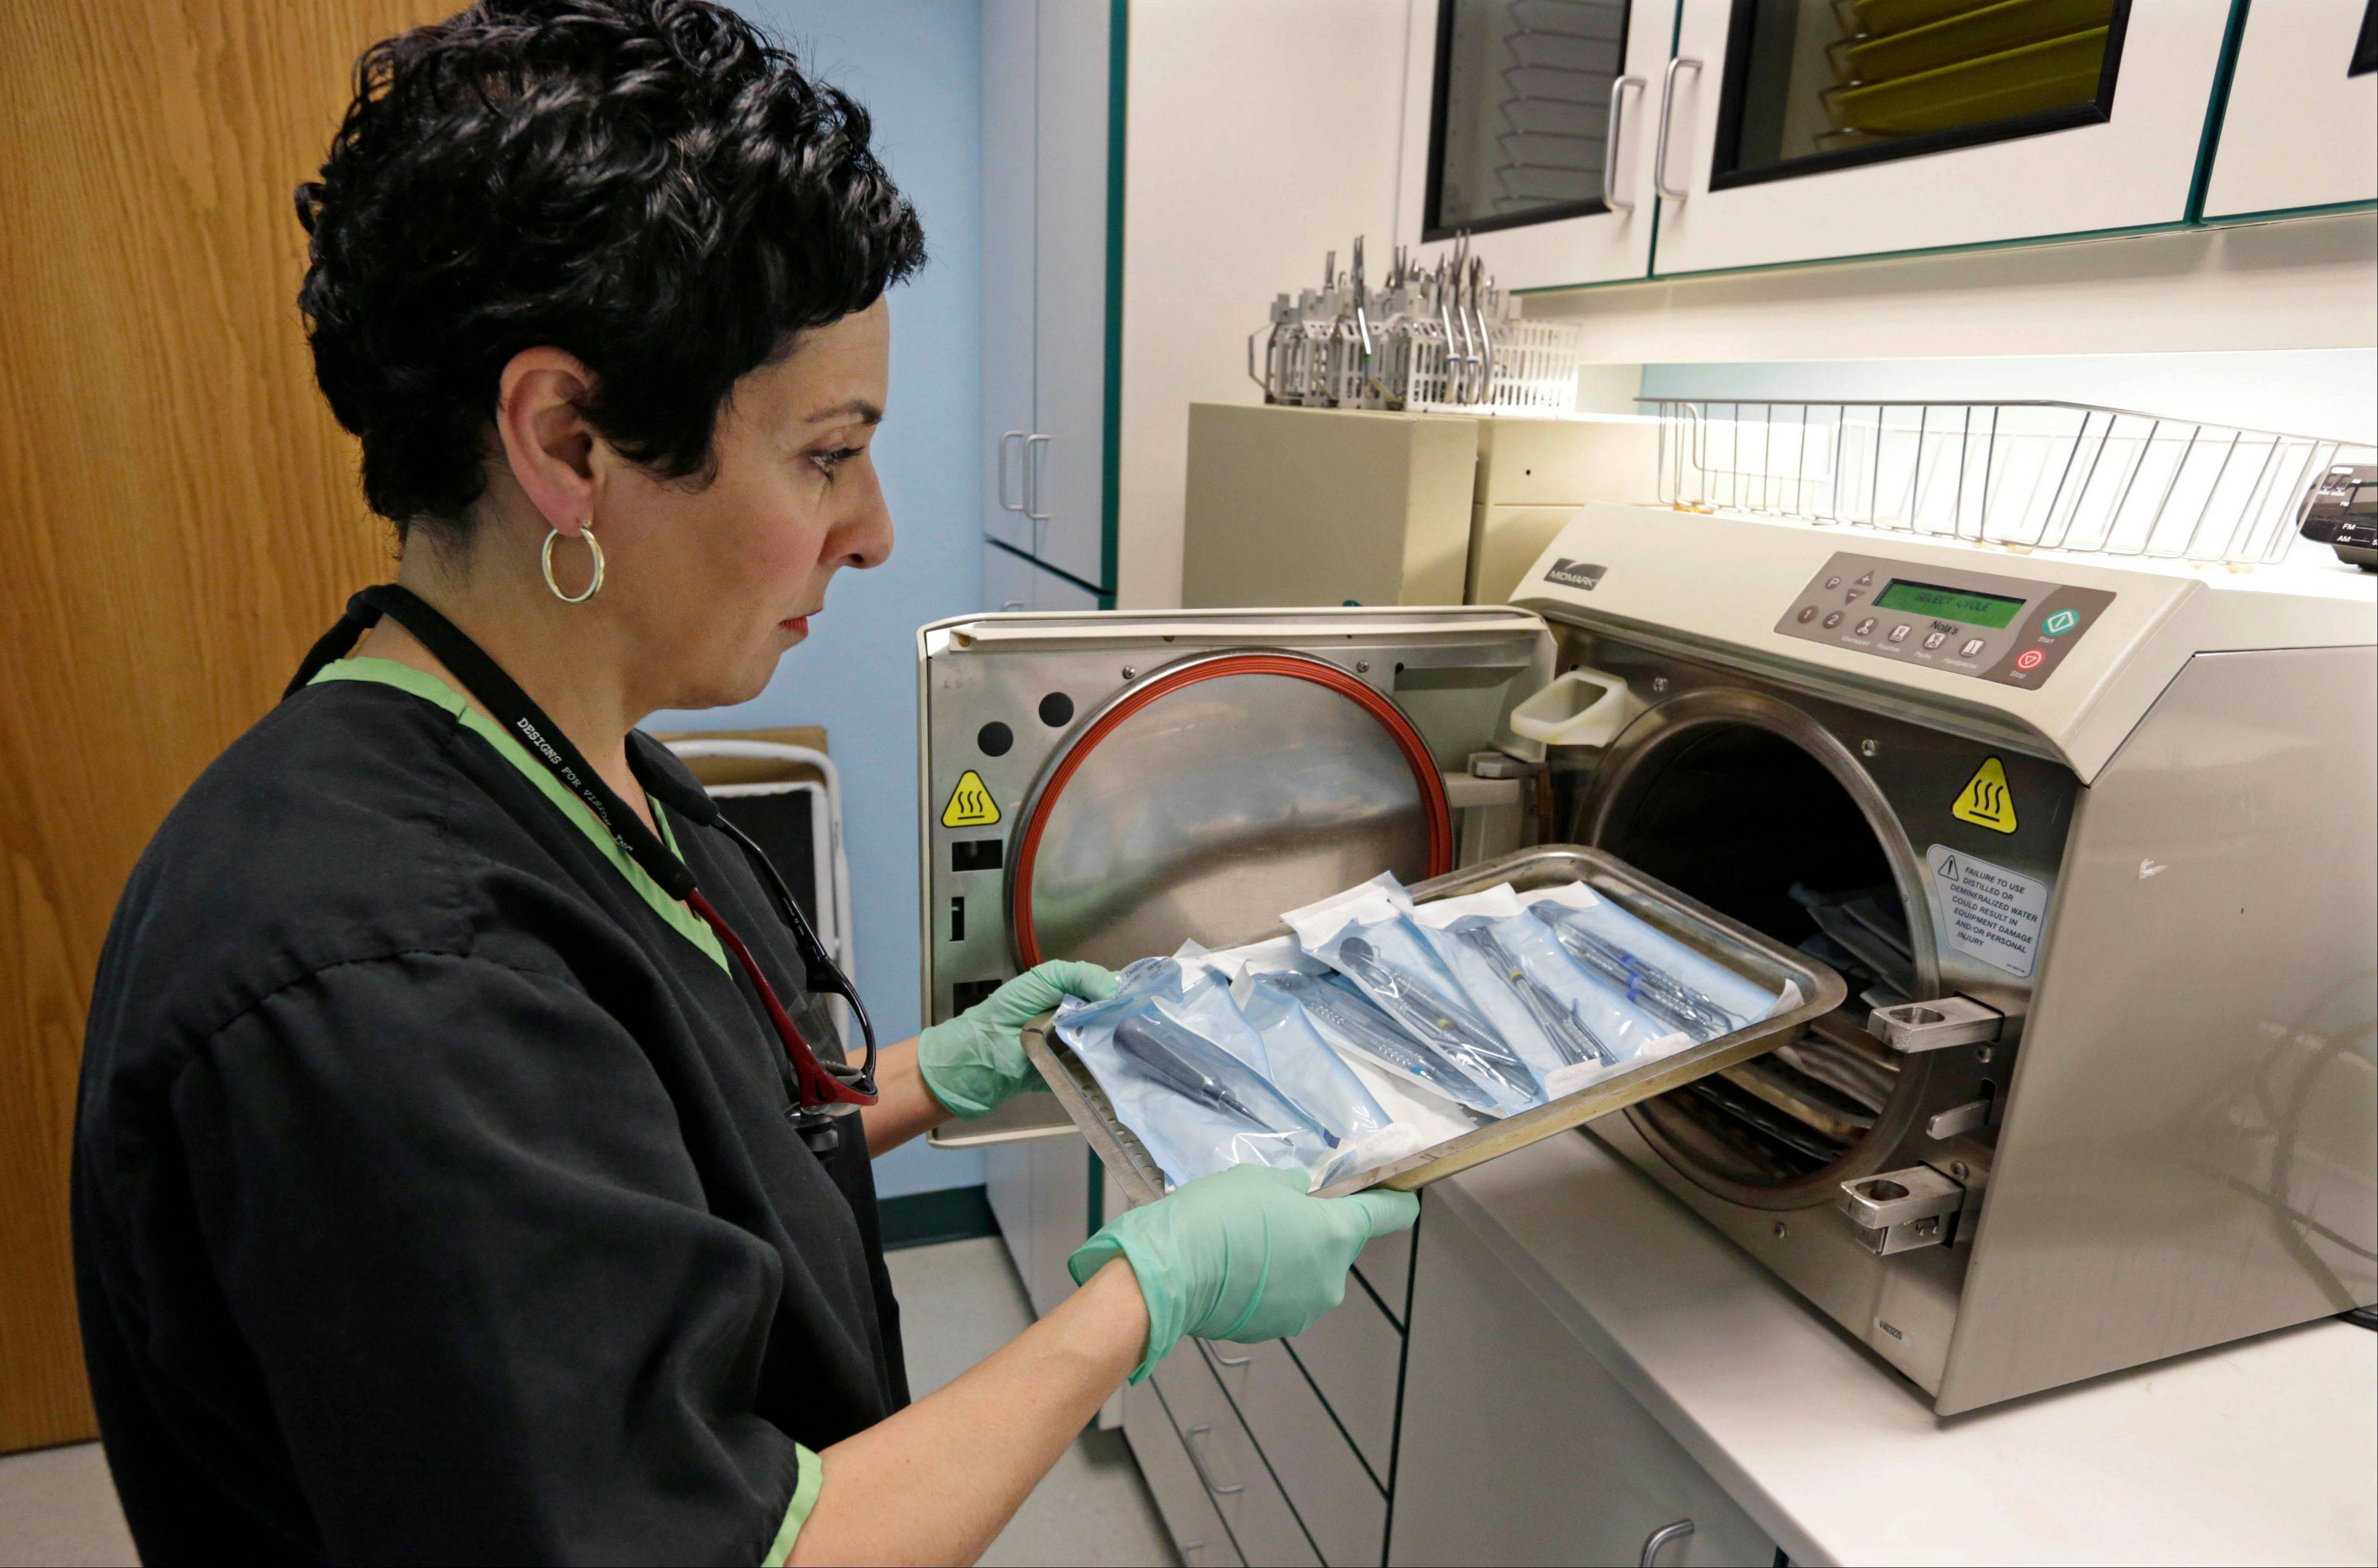 Dentist Alice G. Boghosian removes packages of properly sterilized dental instruments from an autoclave Friday that uses heat and steam to sterilize the tools, in Chicago. Health officials in Oklahoma are calling an oral surgeon there who used dirty equipment and risked cross-contamination a ìmenace to public healthî and are urging thousands of his patients to seek medical screenings for hepatitis B, hepatitis C and HIV.